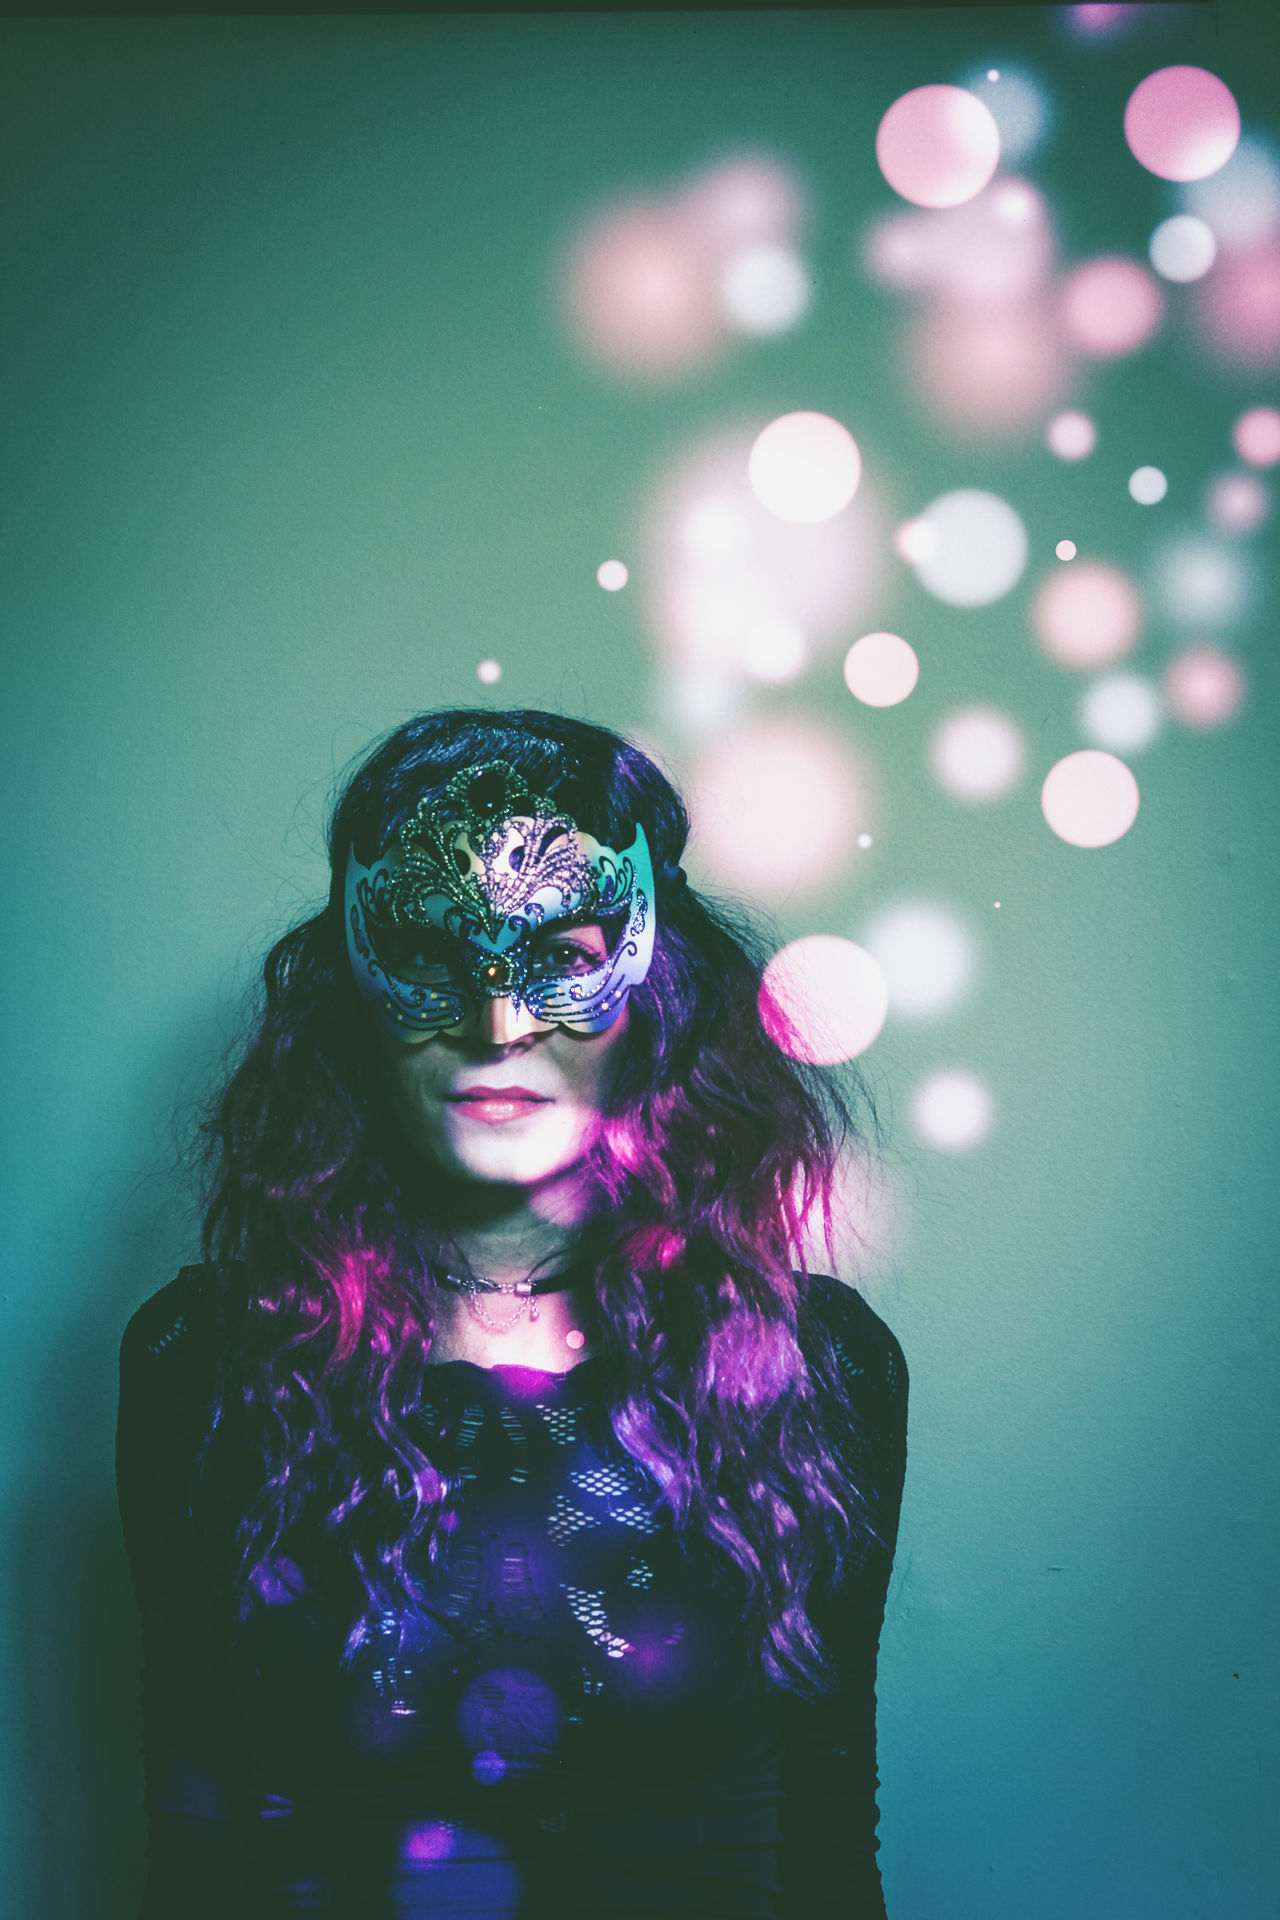 Adult Arts Culture And Entertainment Boheh Close-up Costume Indoors  Mask Mistery One Person Portrait Purple Real People Venetian Mask Woman Women Who Inspire You Uniqueness The Portraitist - 2017 EyeEm Awards